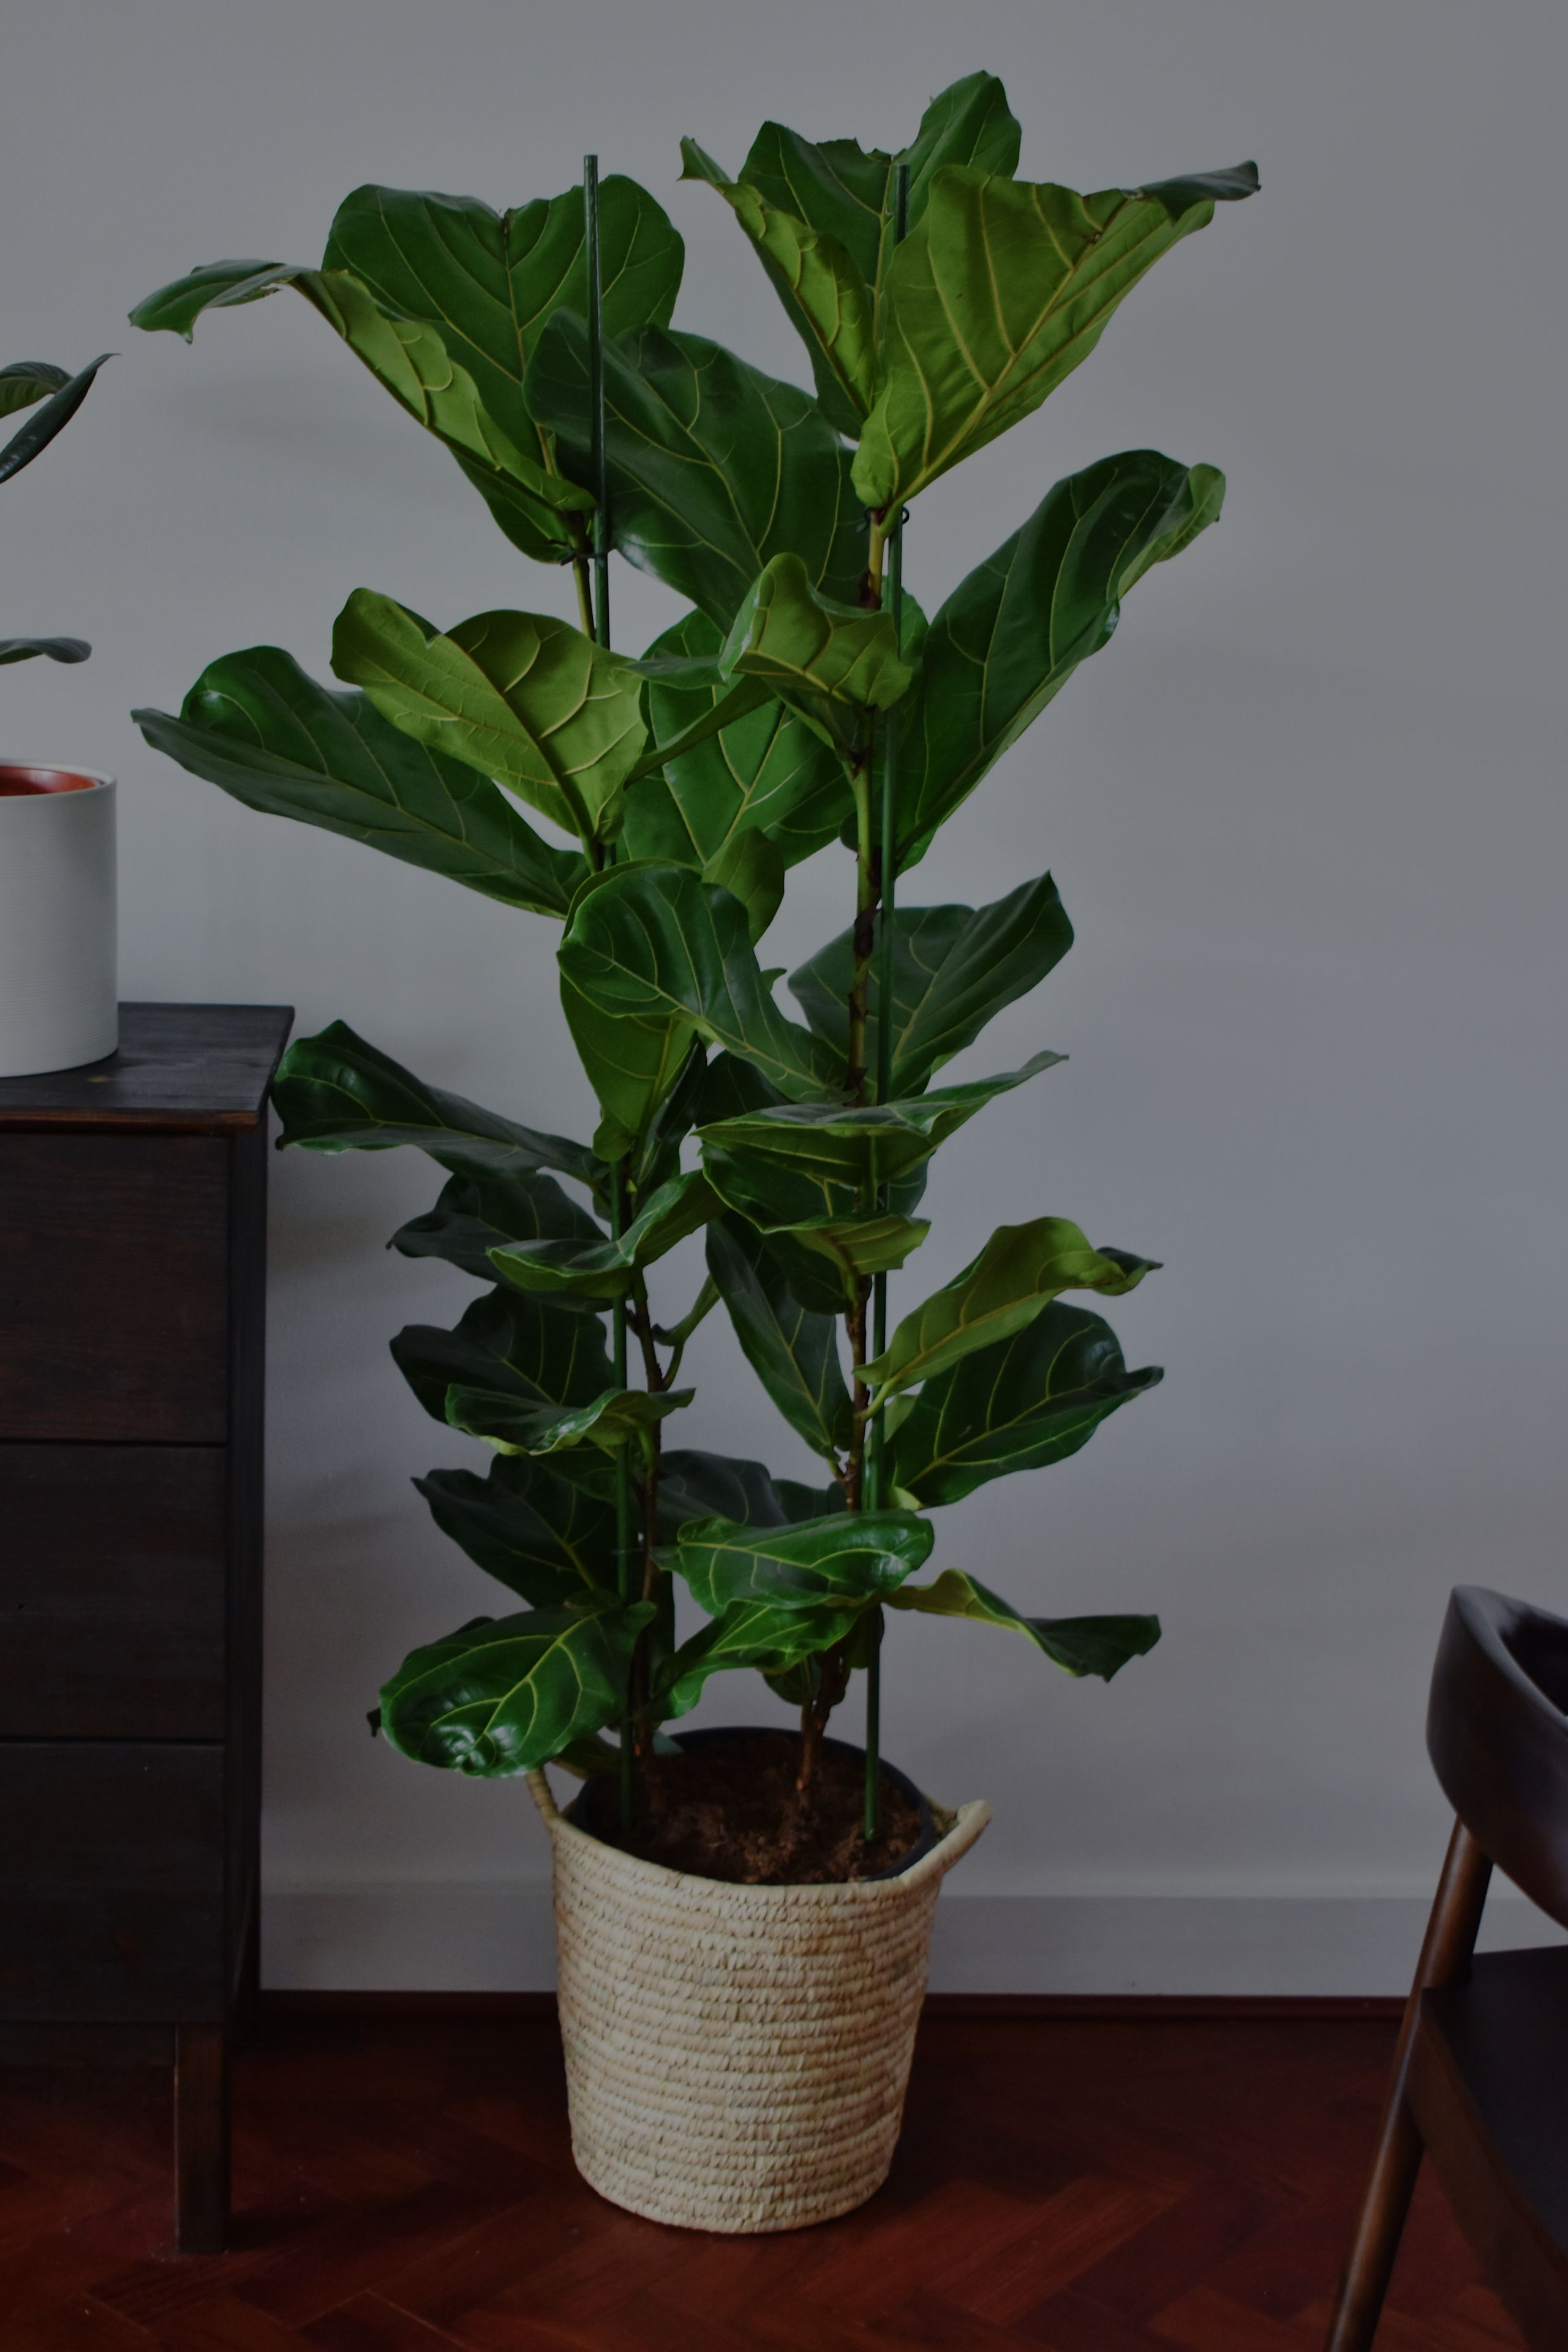 How Real Plants Affect Daily Life and Why Your Home Needs Them